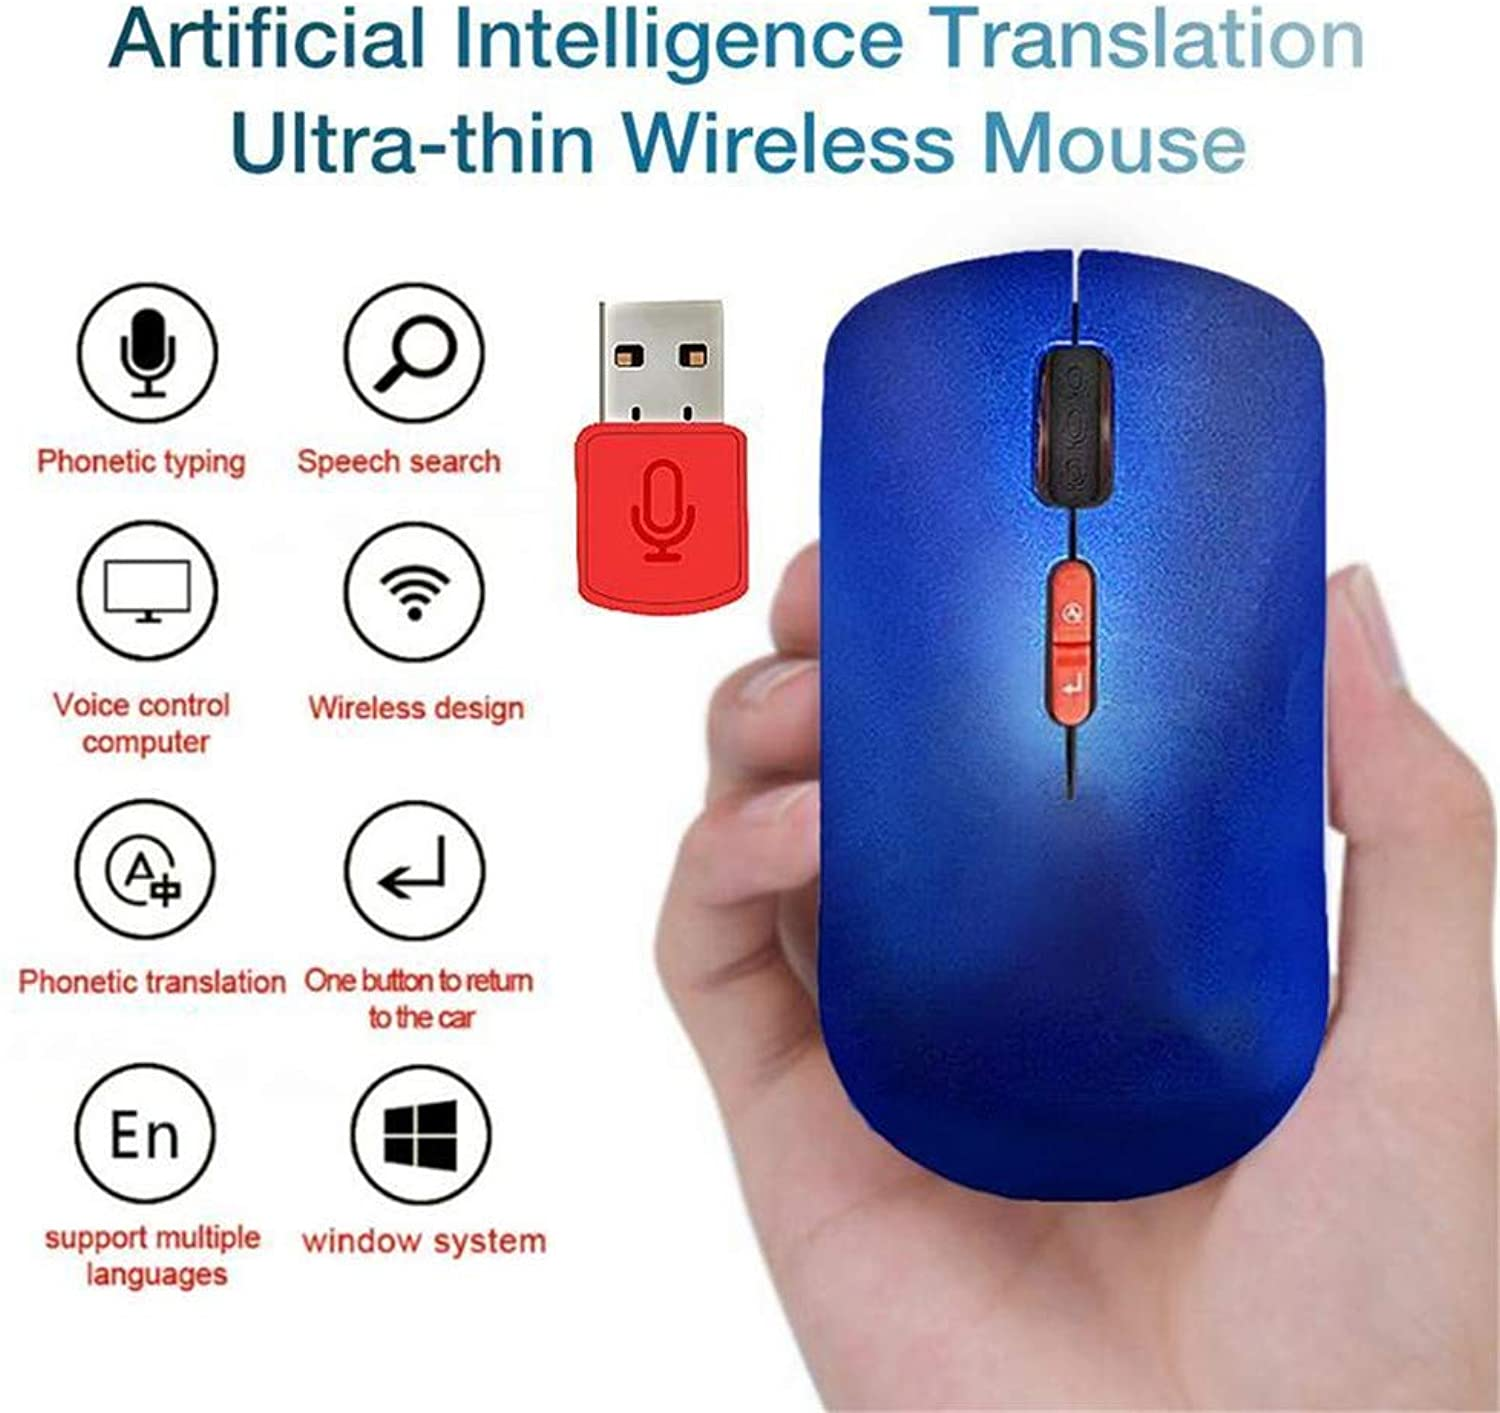 Artificial Intelligence Translation Mouse Voice to Text 30 Country Language Translation UltraThin Portable Mobile Optical Computer Wireless Mouse